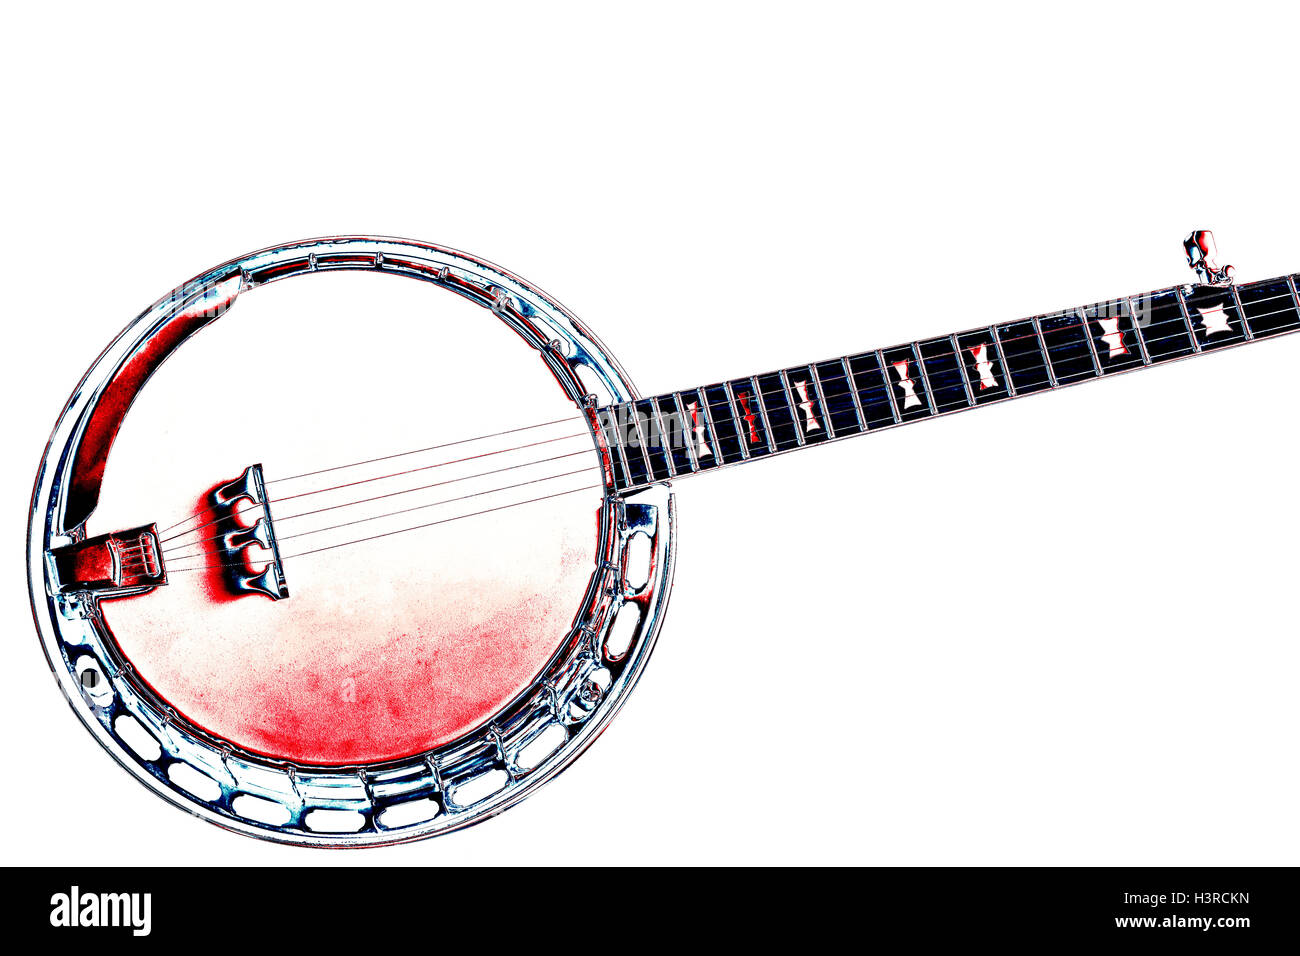 5 string bluegrass banjo on a White background in a grunge style. - Stock Image